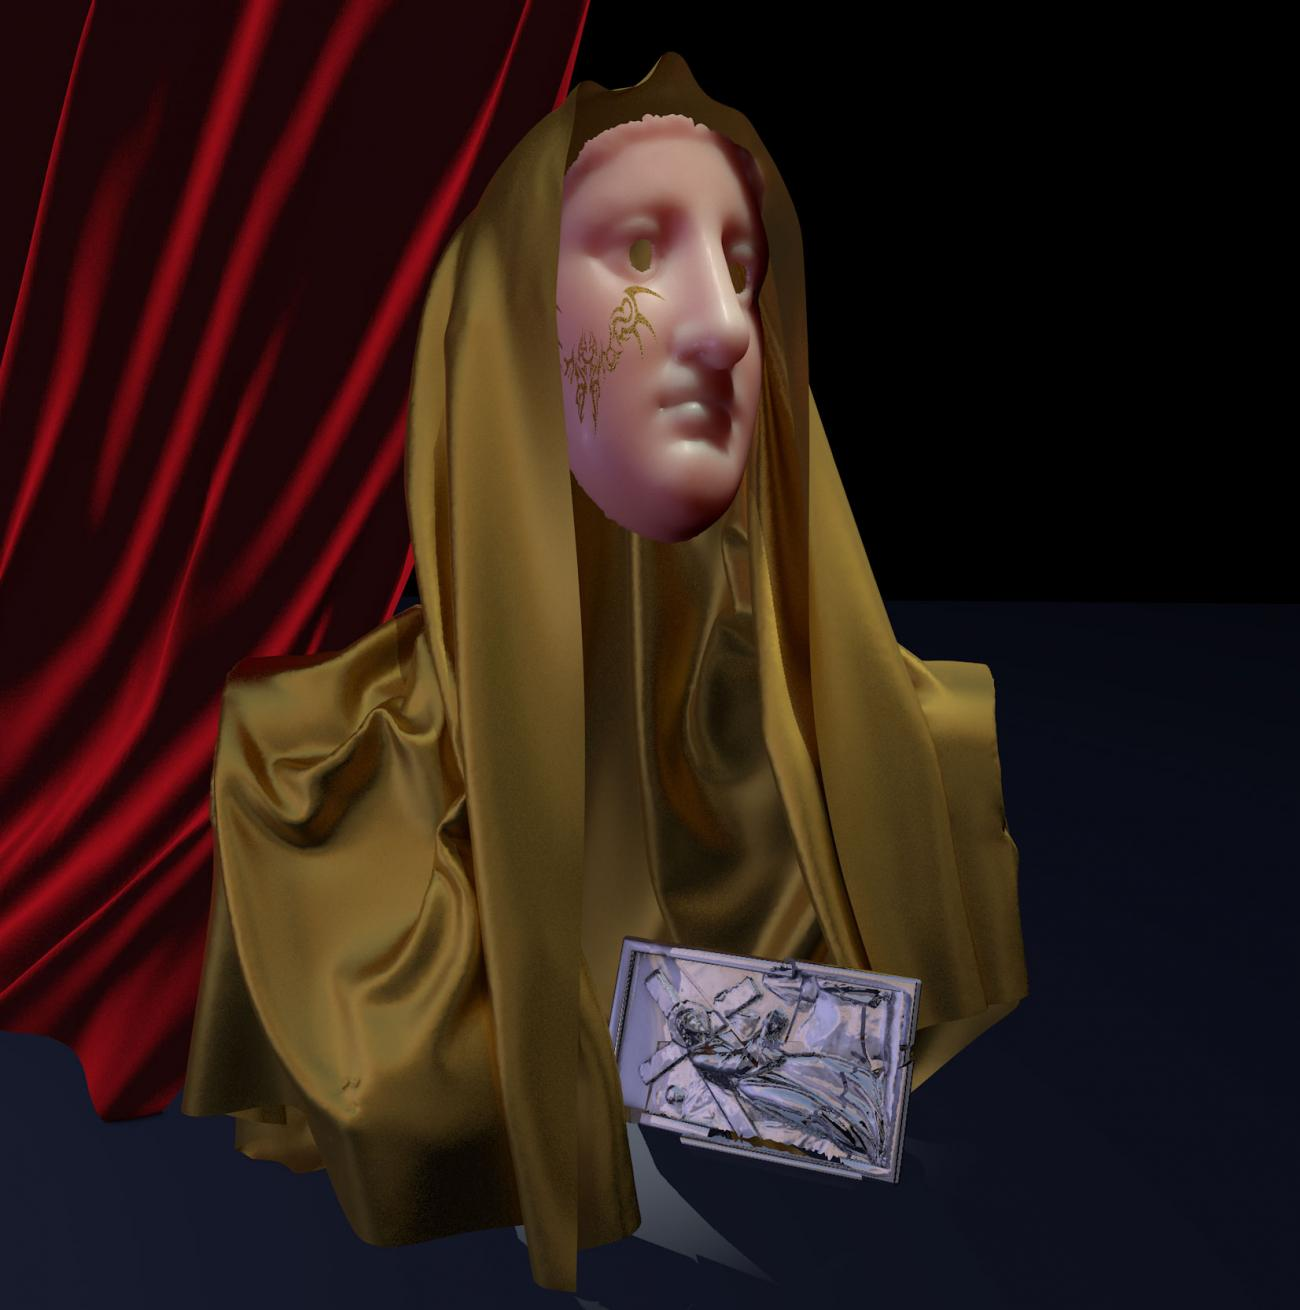 Wax Madonna by Eremes